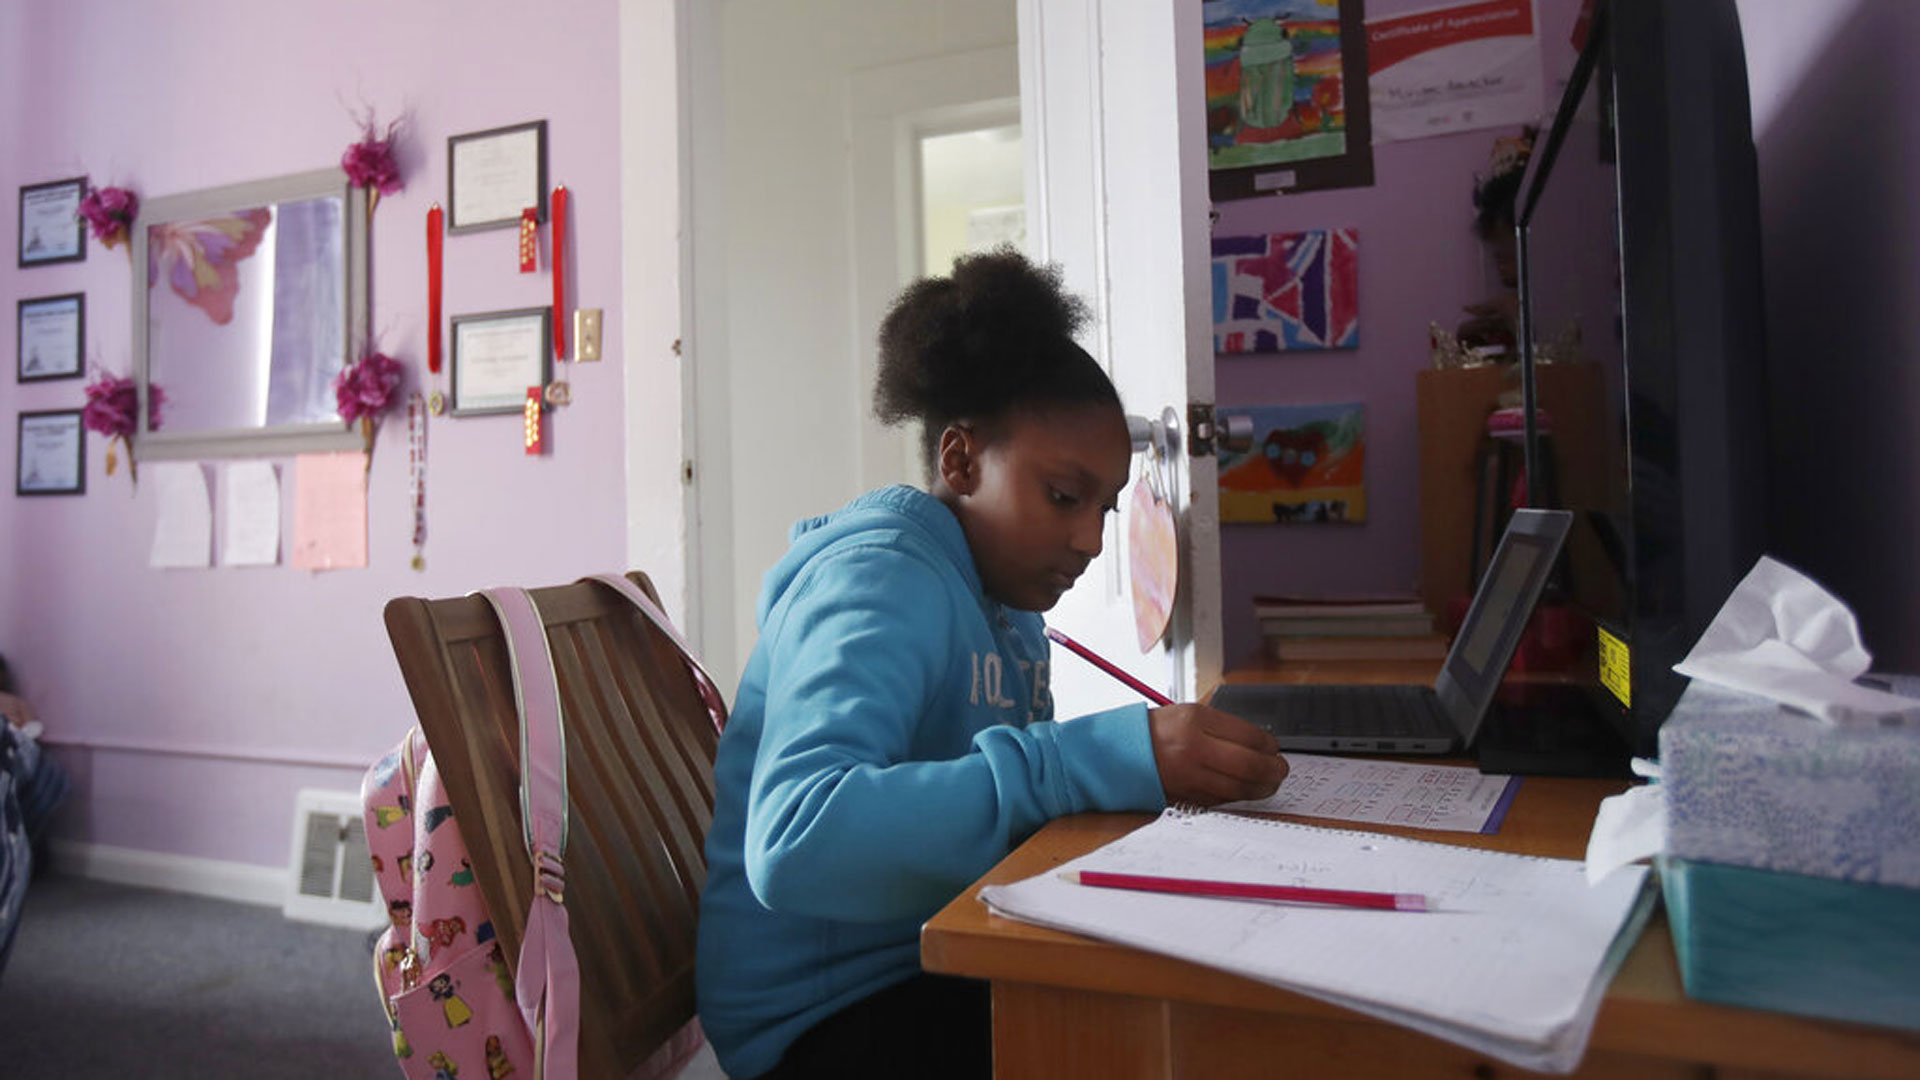 In this April 9, 2020, file photo, Sunnyside Elementary School fourth-grader Miriam Amacker does school work in her room at her family's home in San Francisco. (AP Photo/Jeff Chiu, File)